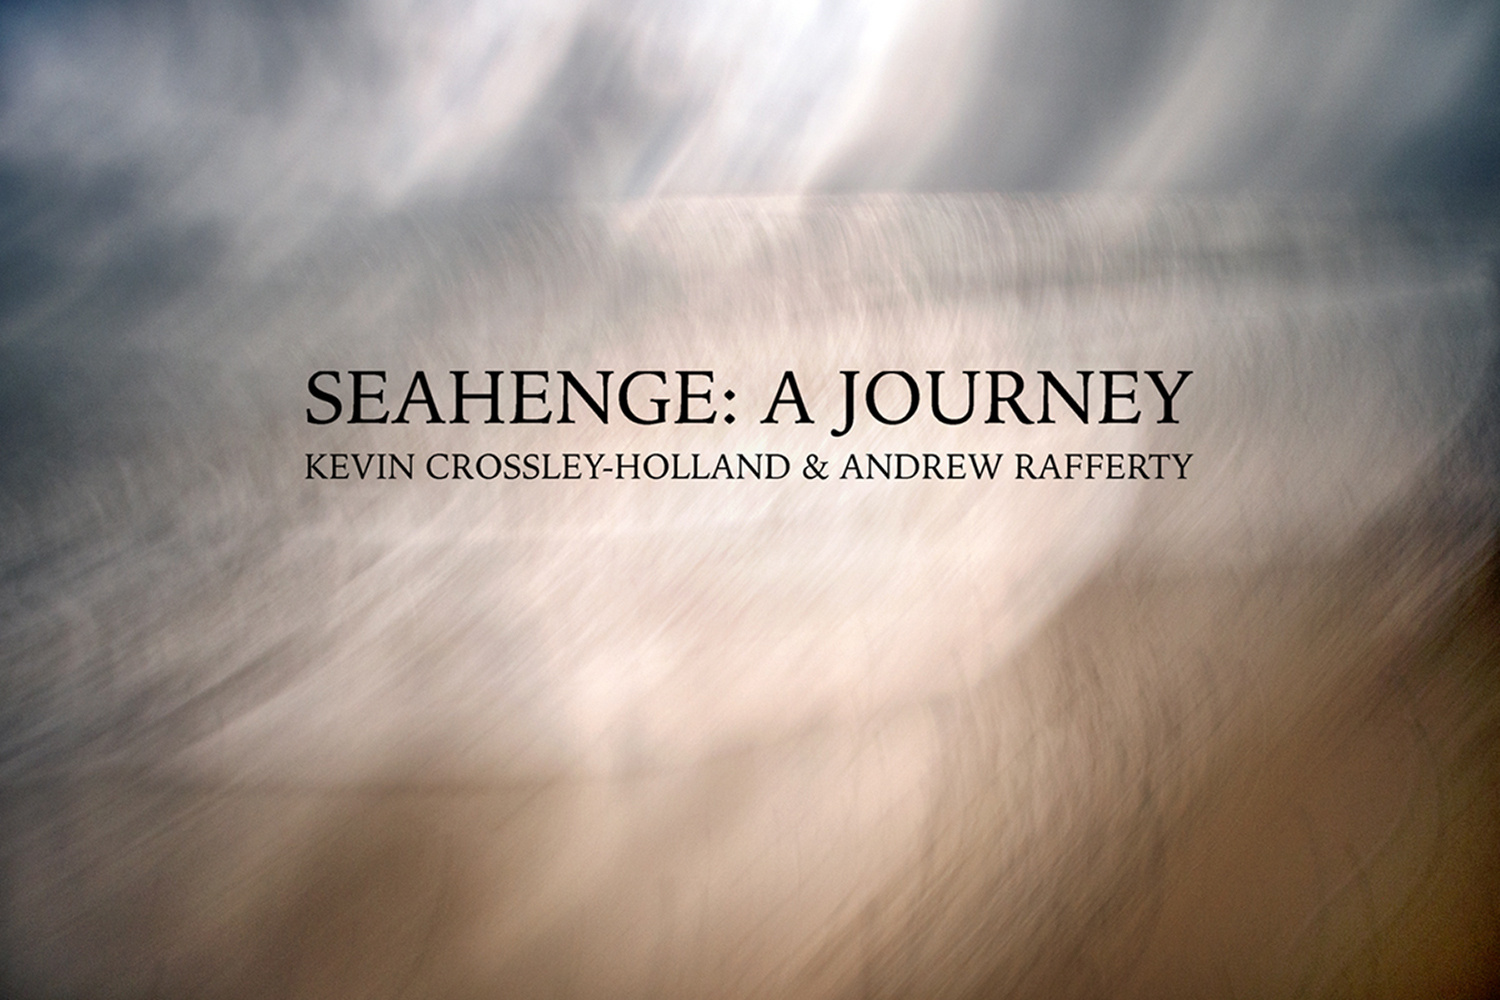 Seahenge: A Journey Kevin Crossley-Holland/Andrew Rafferty by Kevin Crossley-Holland